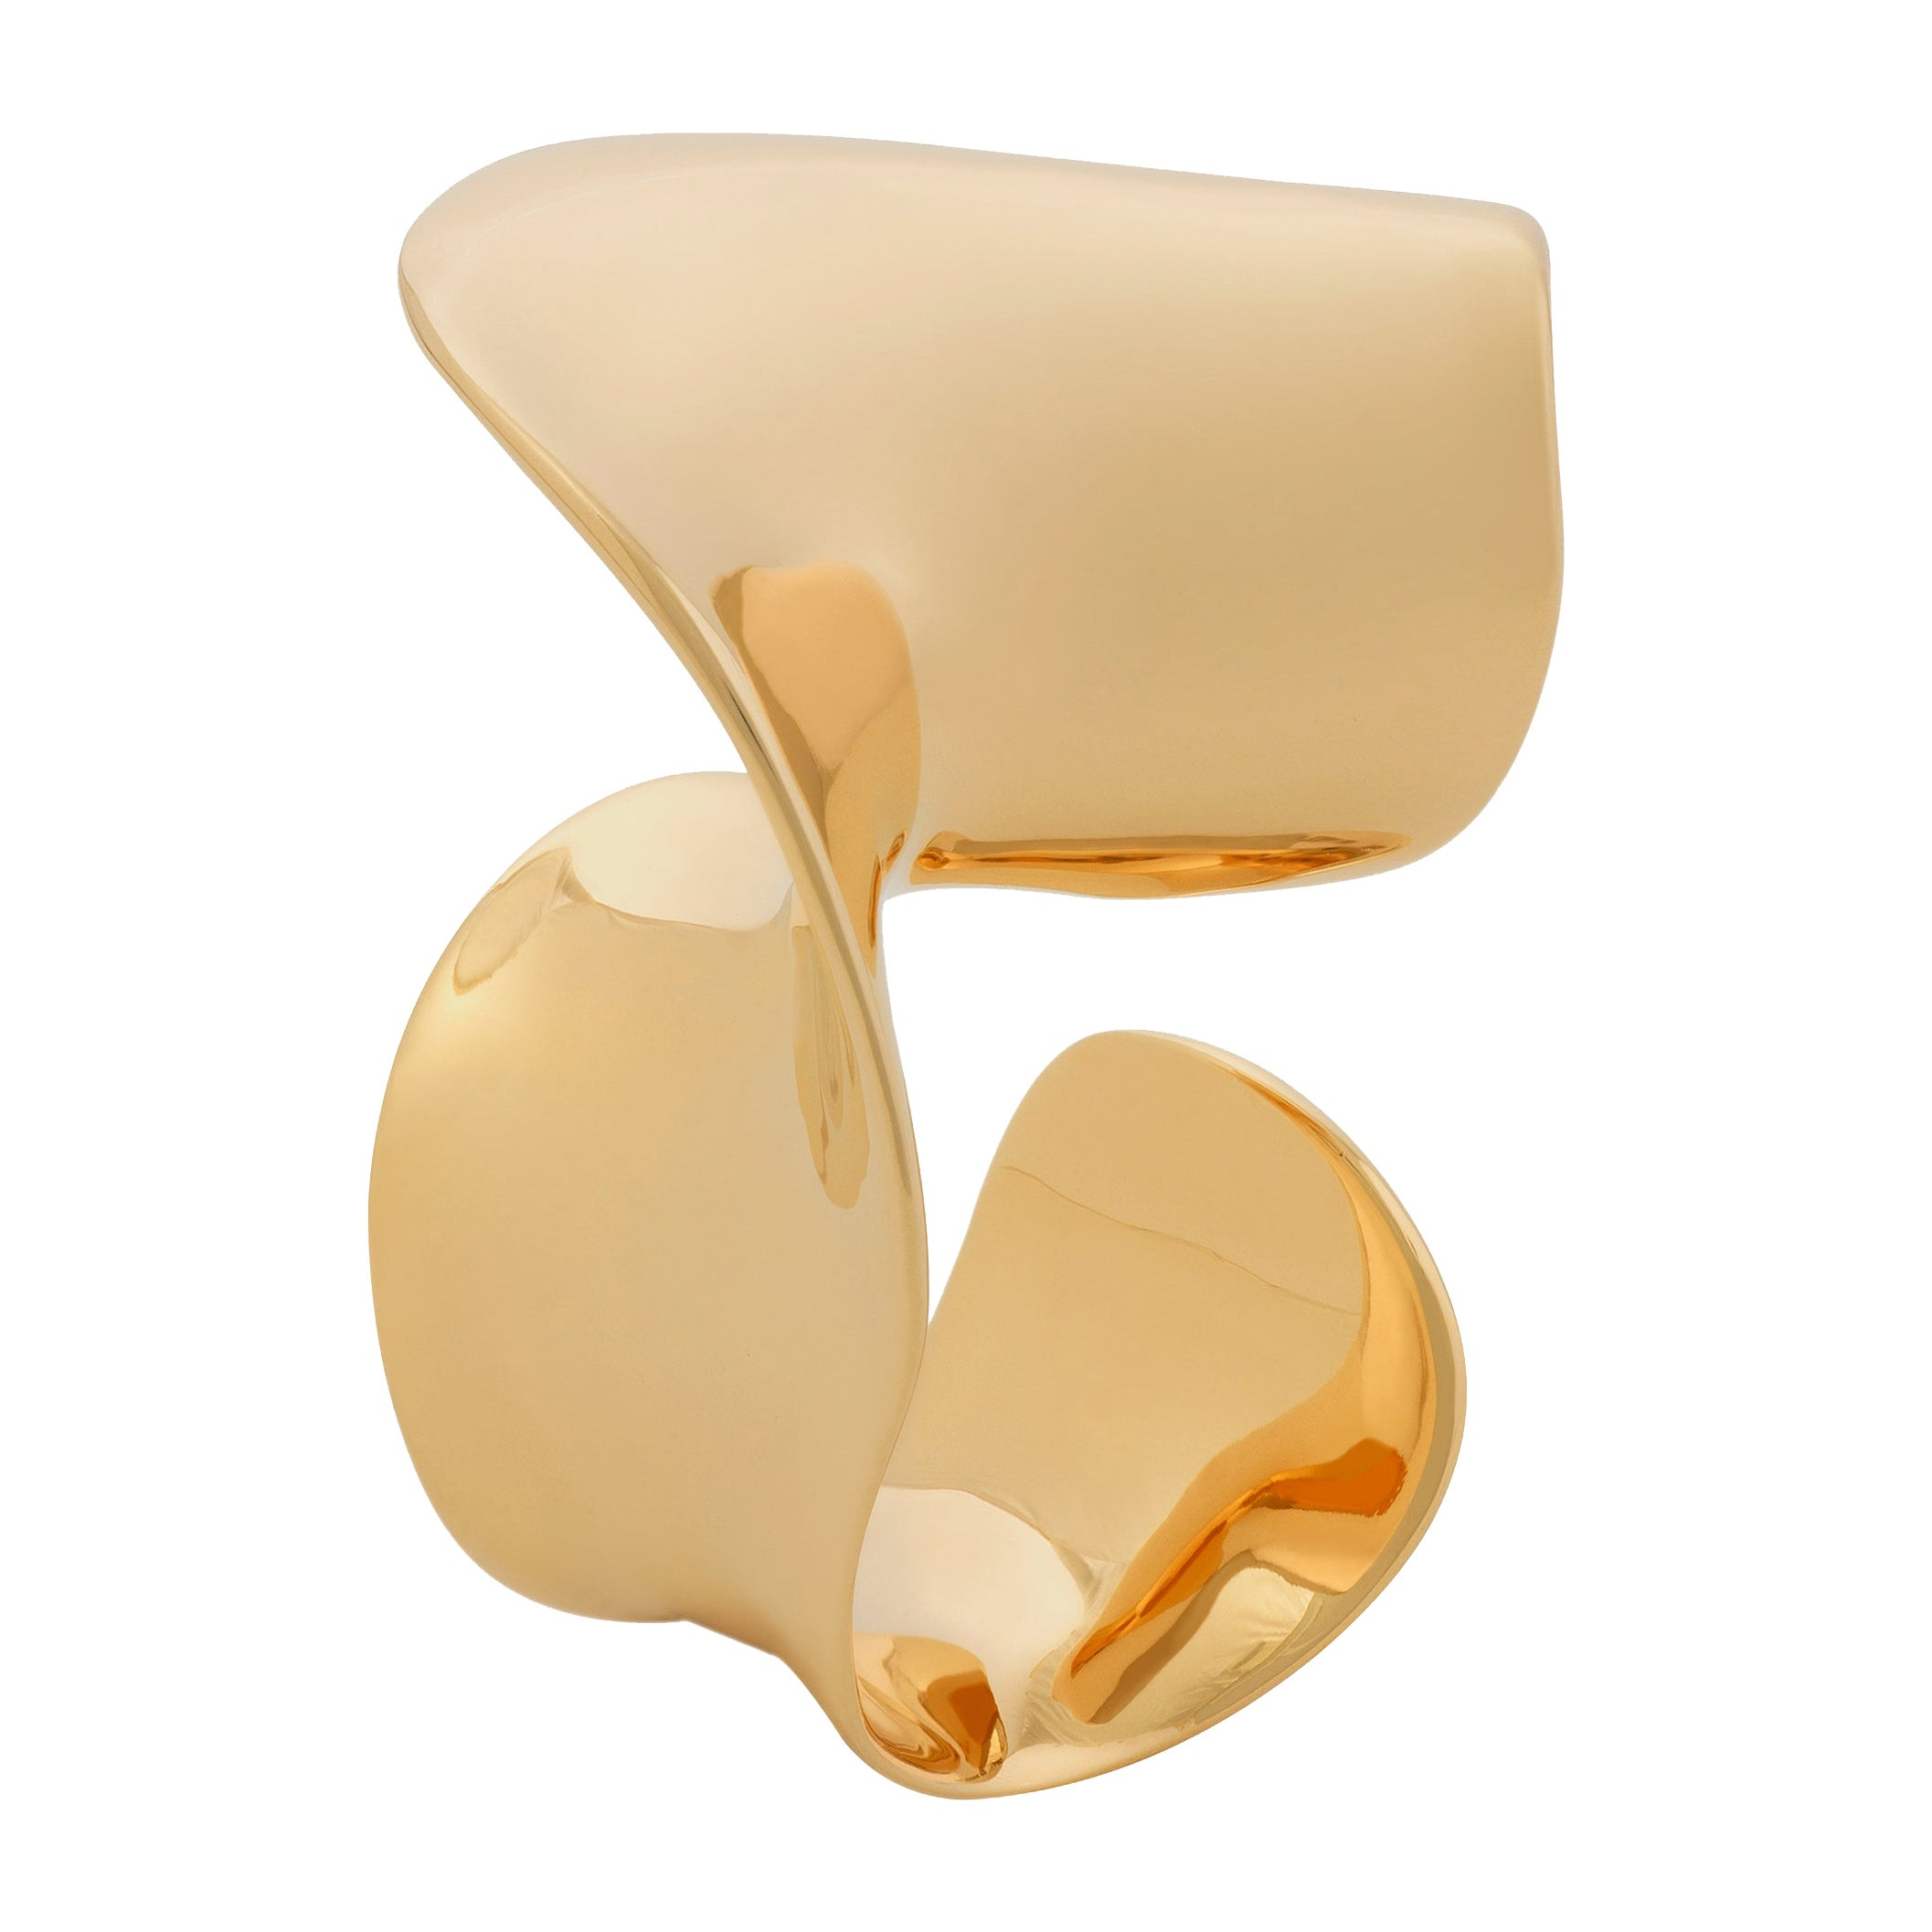 Nathalie Jean Contemporary Limited Edition 18 Karat Gold Sculpture Cocktail Ring